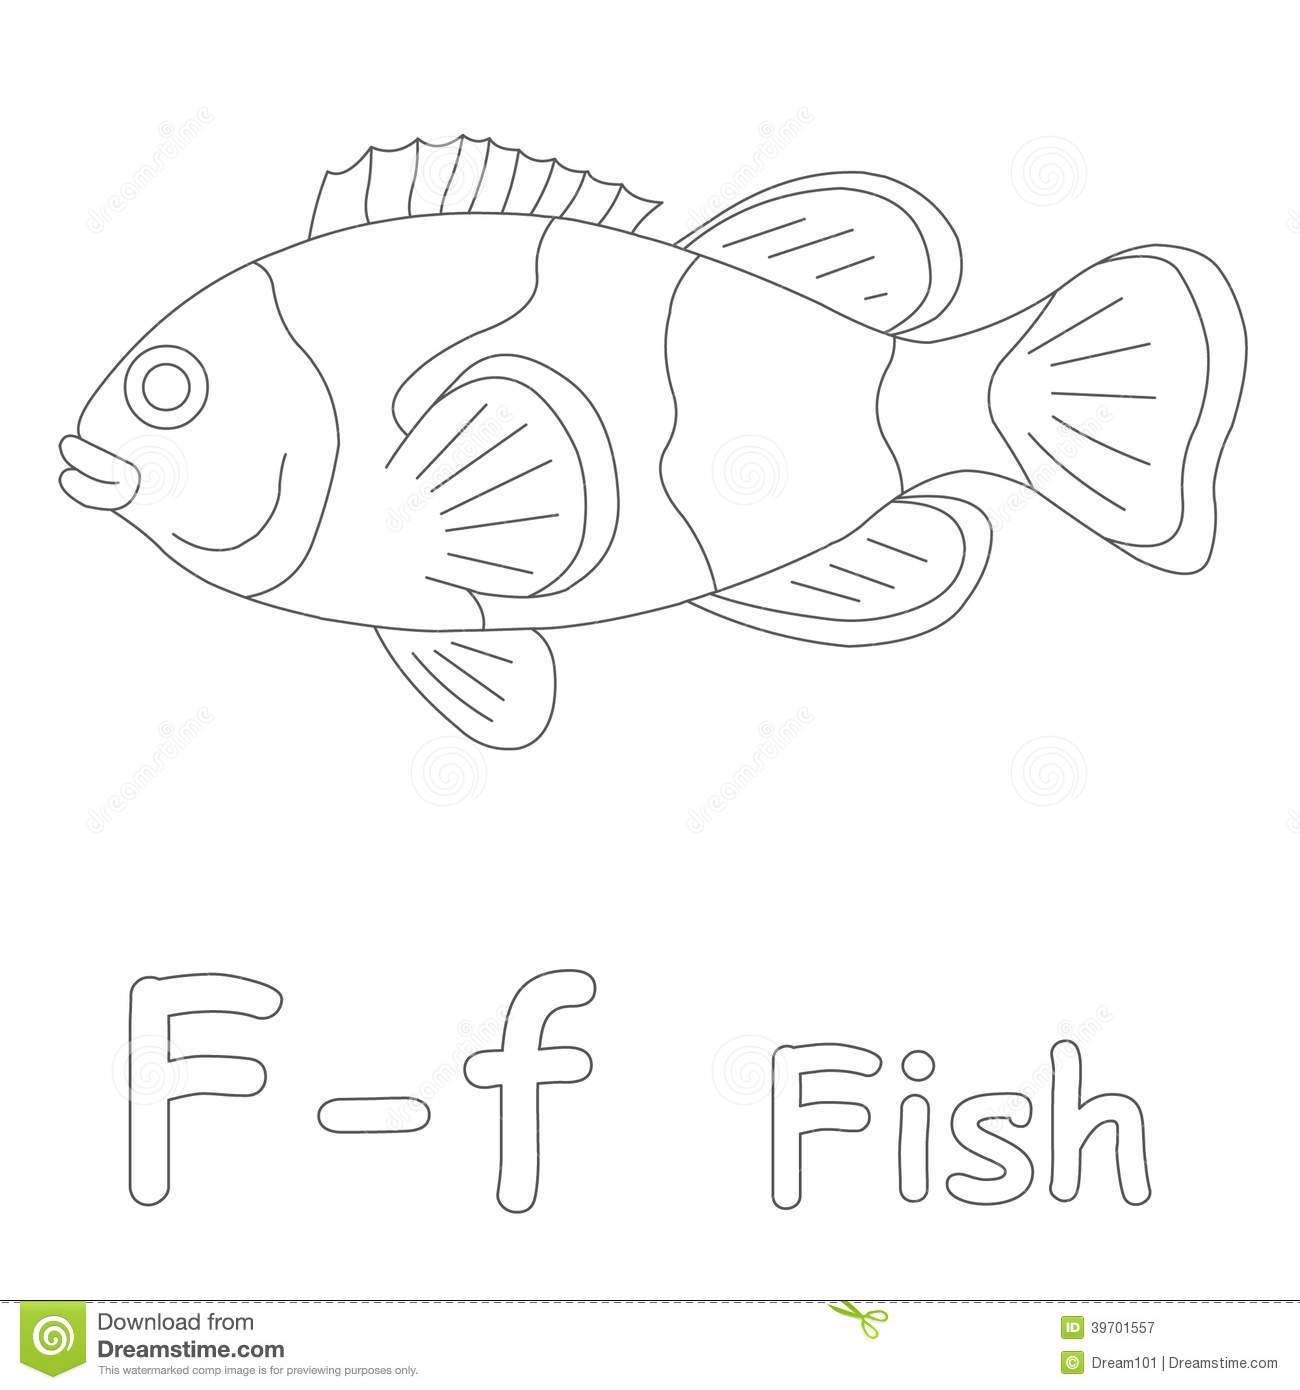 f for fish coloring pages - photo #22